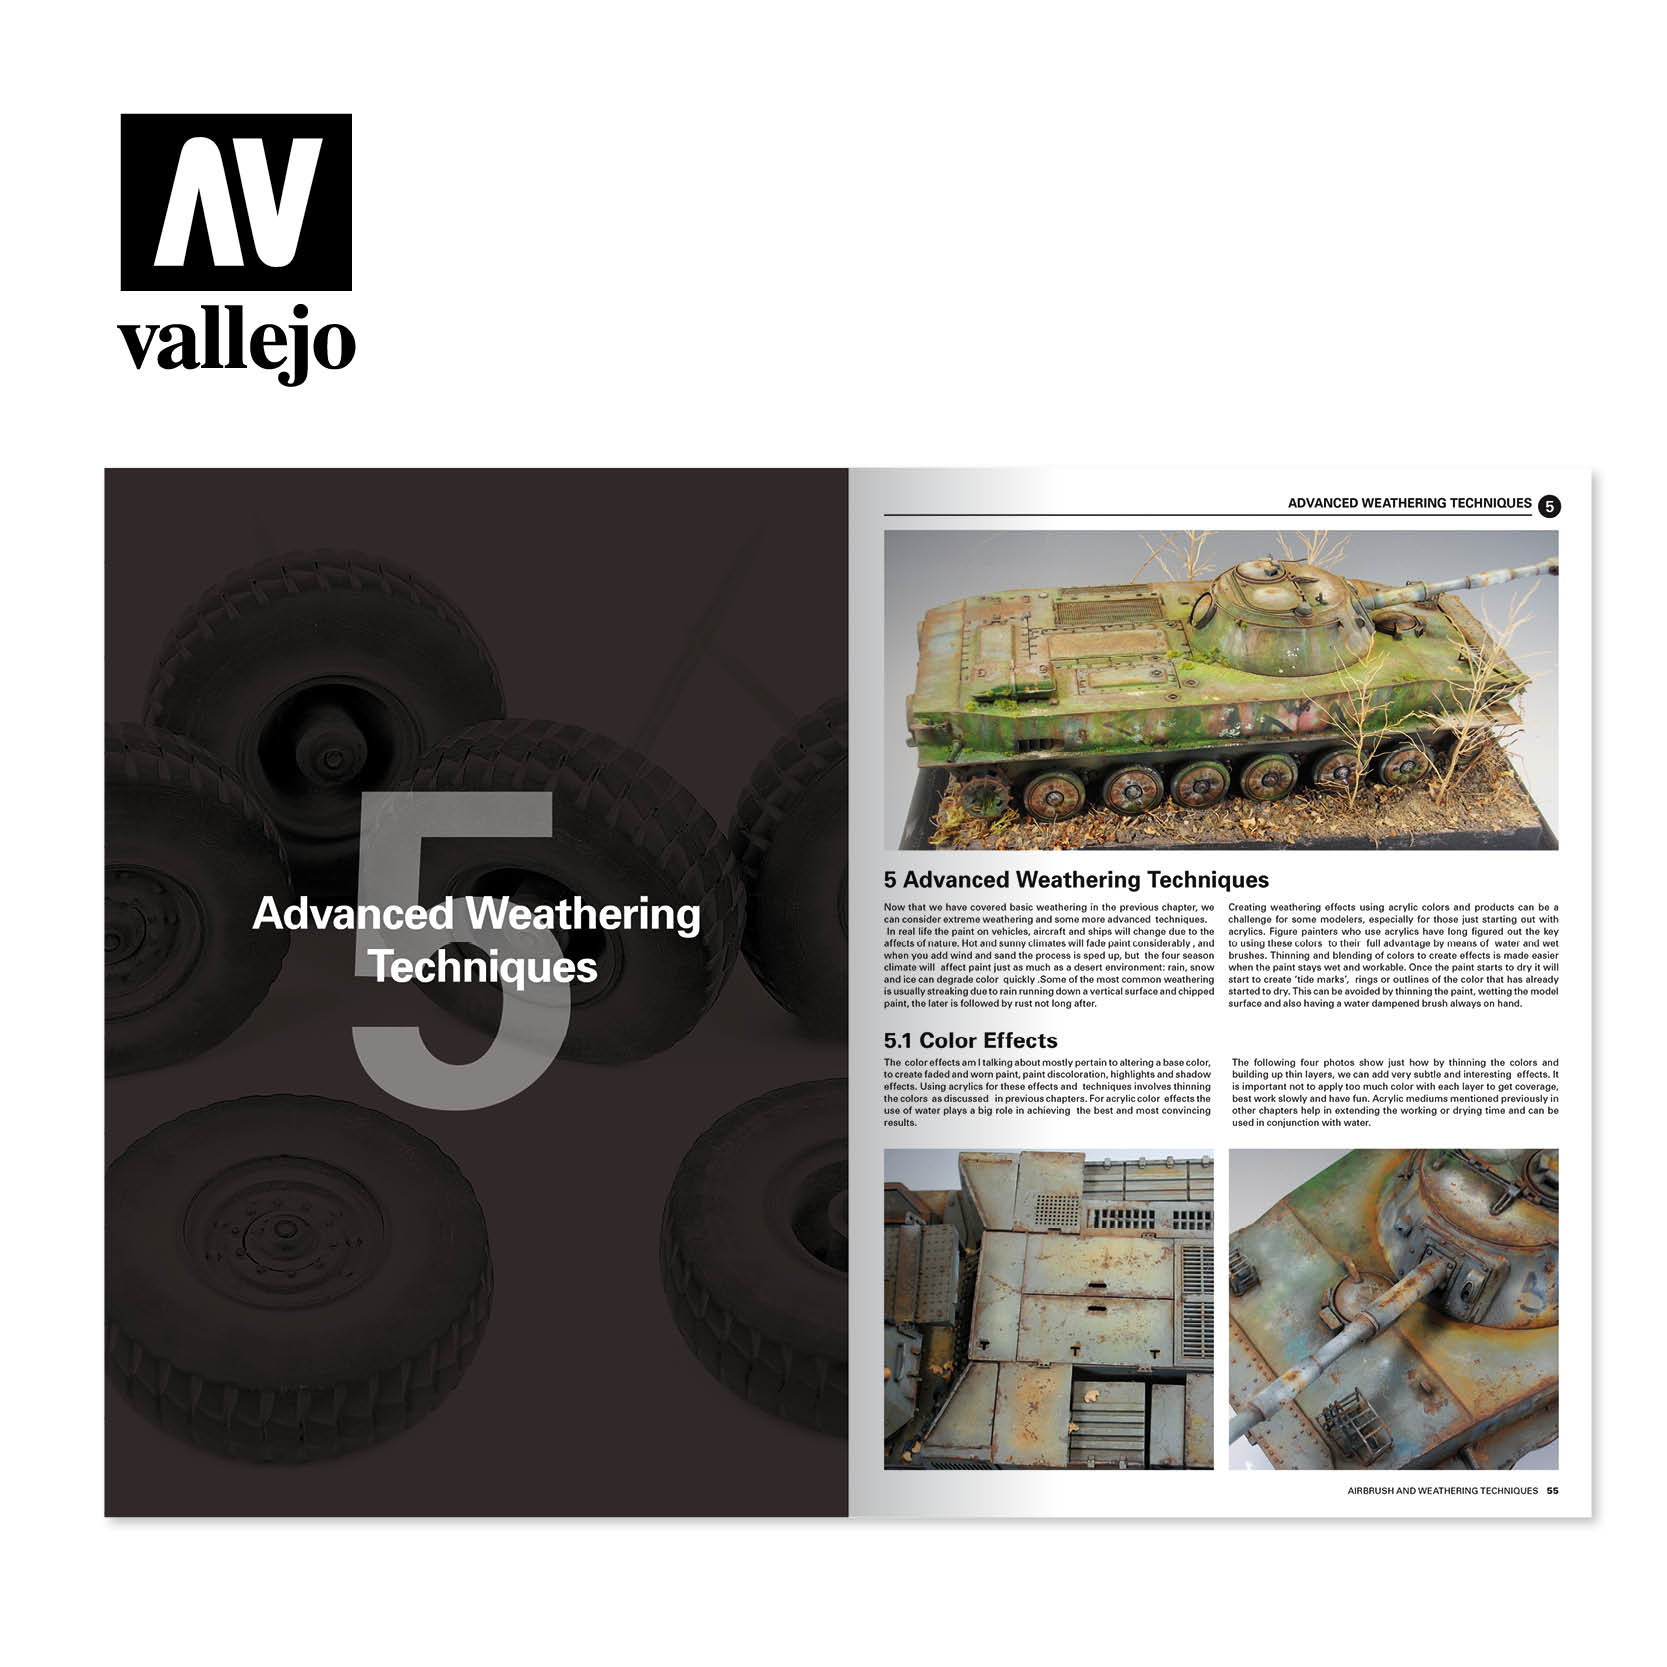 Vallejo Airbrush And Weathering Techniques - English - Vallejo - VAL-75002